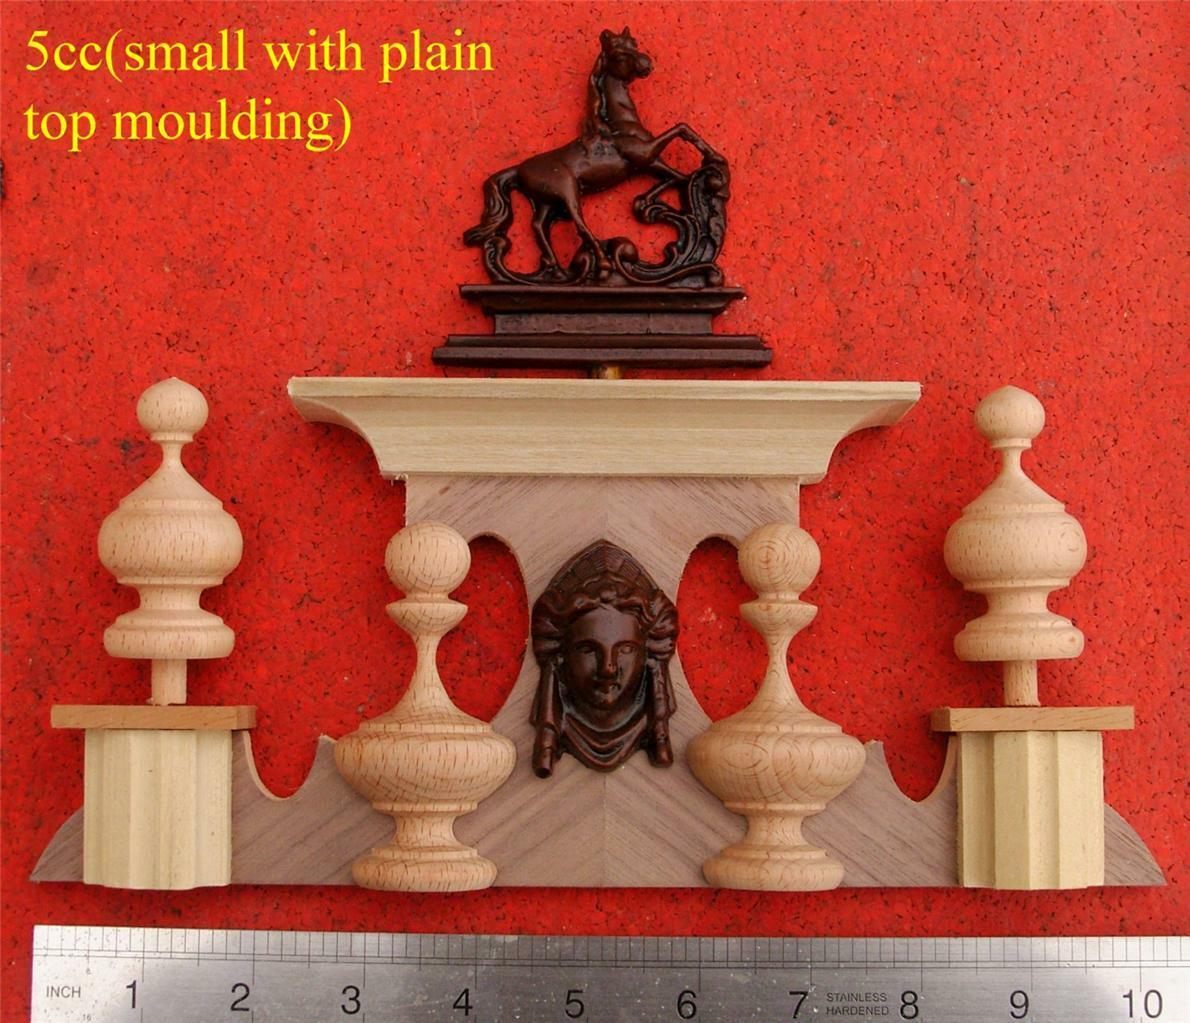 5CC(Small with plain moulding) Replacement Vienna wall clock top, 10  inchs long